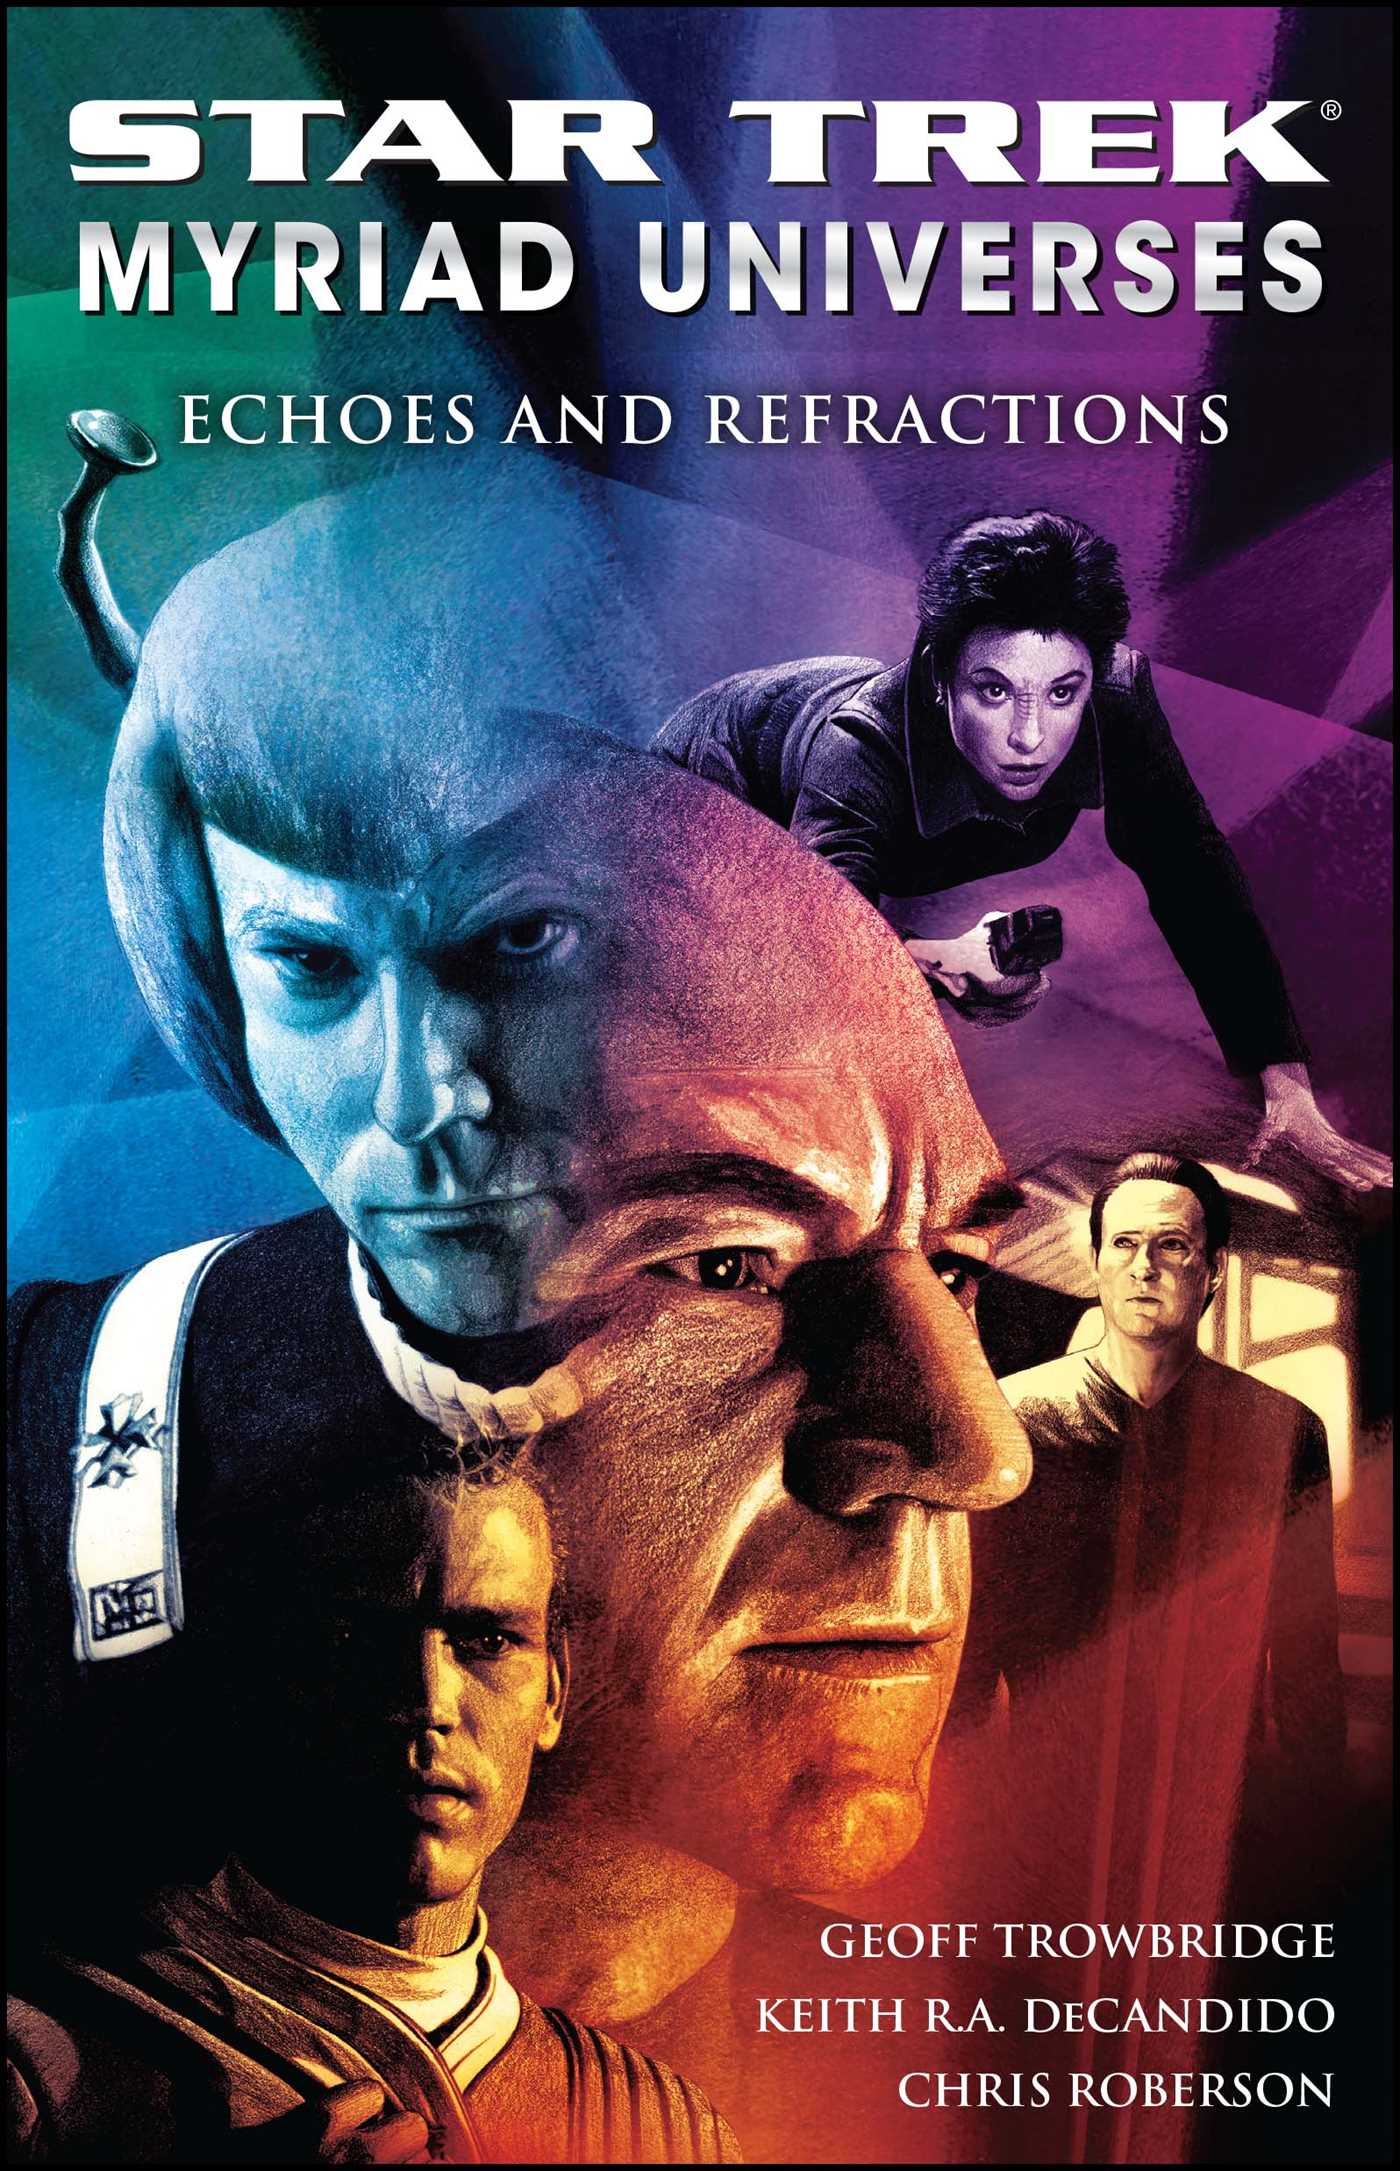 Star trek myriad universes 2 echoes and refractions 9781416578956 hr